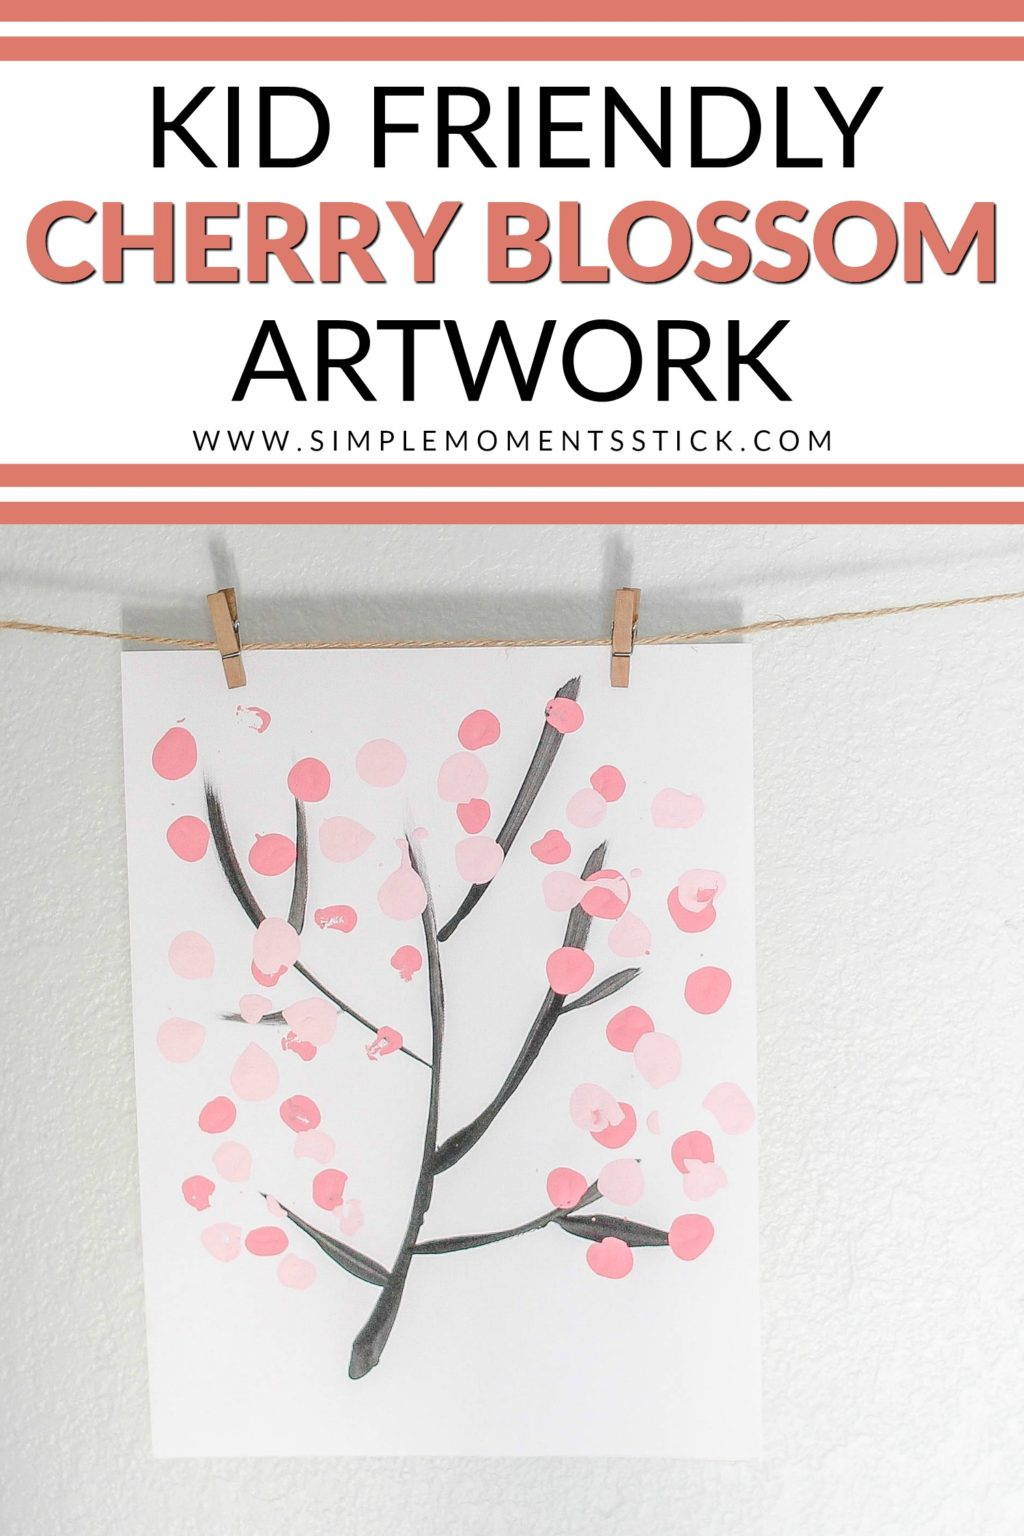 Time for a cherry blossom art lesson! As the cherry blossom trees begin to bloom, it's fun to recreate them on paper. This cherry blossom artwork is so easy to do, you'll want to get your kids involved!